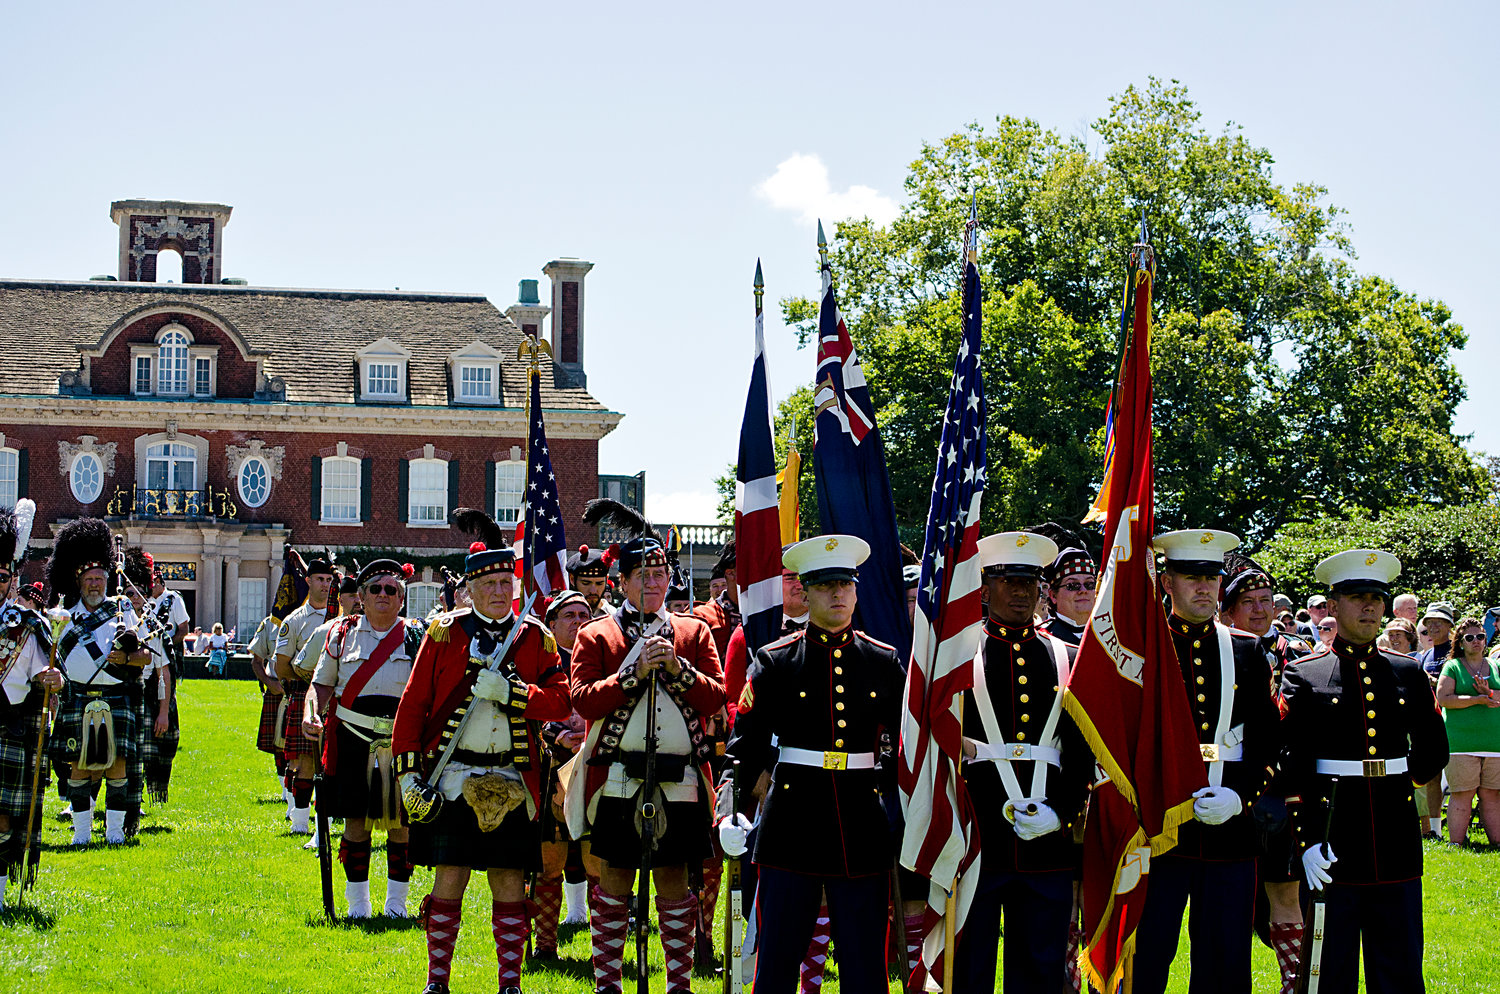 Colorful pipers and drummers prepare to step proudly around the grounds of Old Westbury Gardens honoring a cherished heritage.